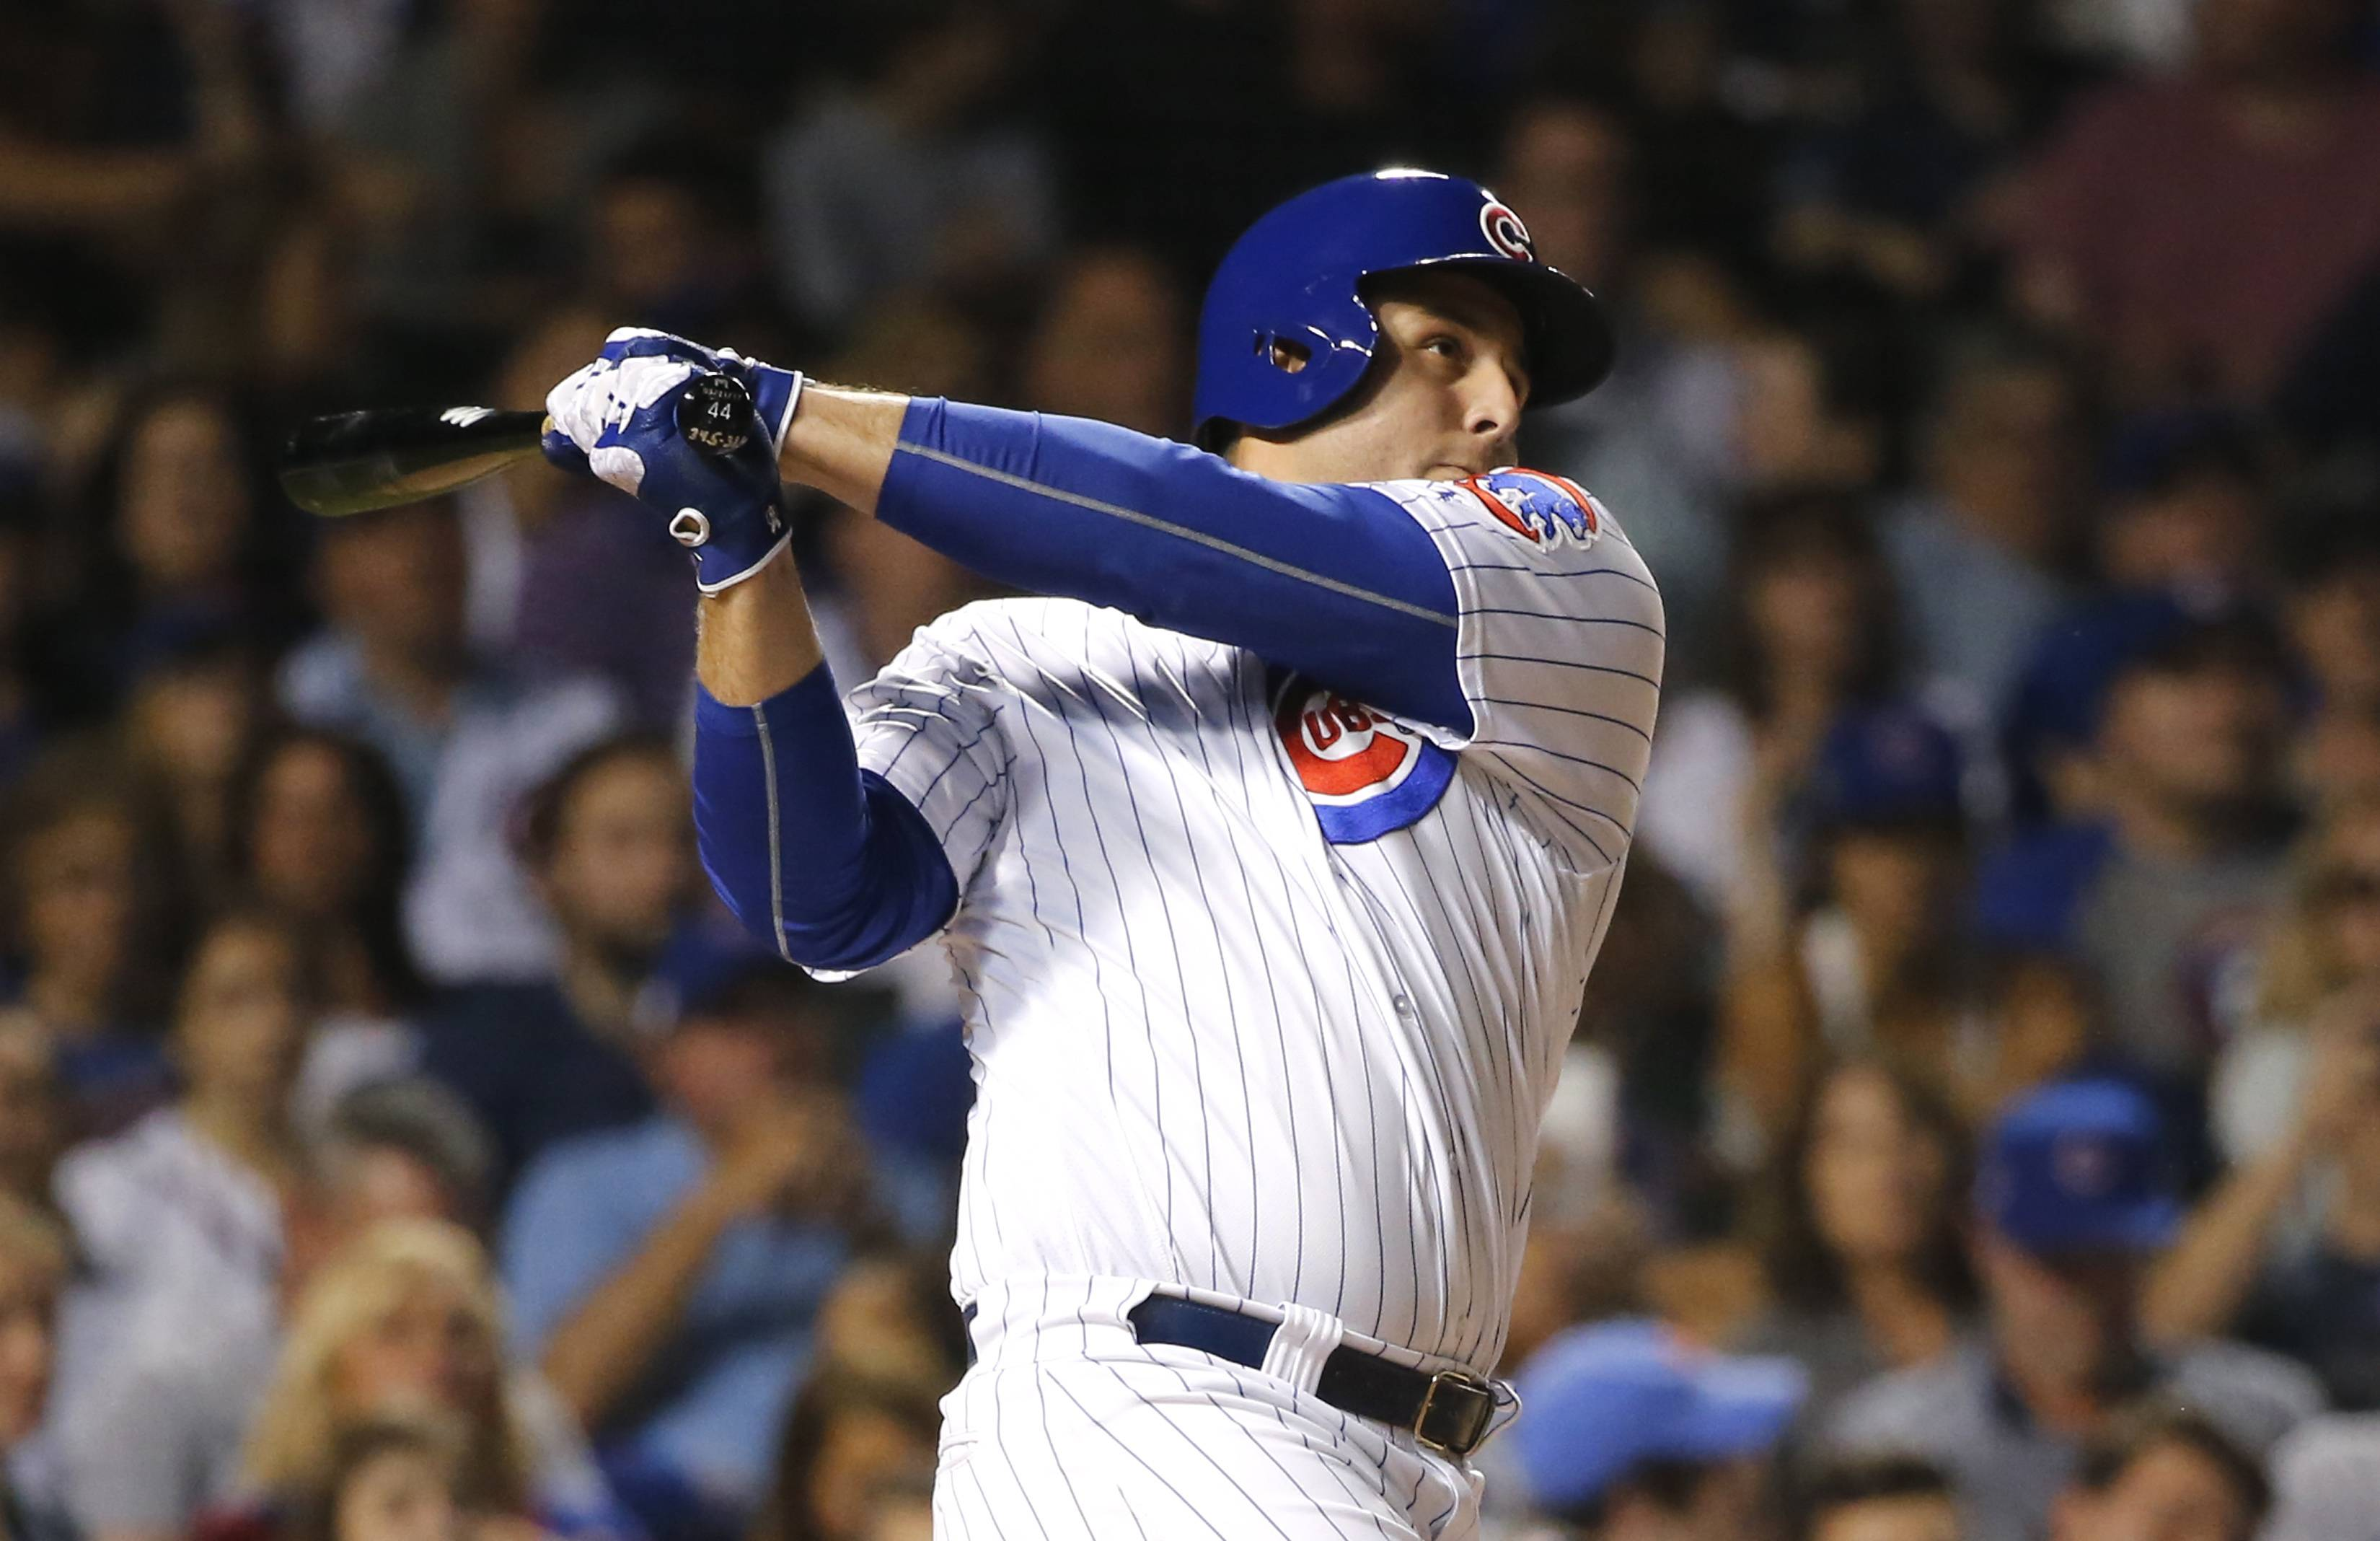 Chicago Cubs' Anthony Rizzo watches his home run off Cincinnati Reds' Asher Wojciechowski during the fourth inning Monday at Wrigley Field.